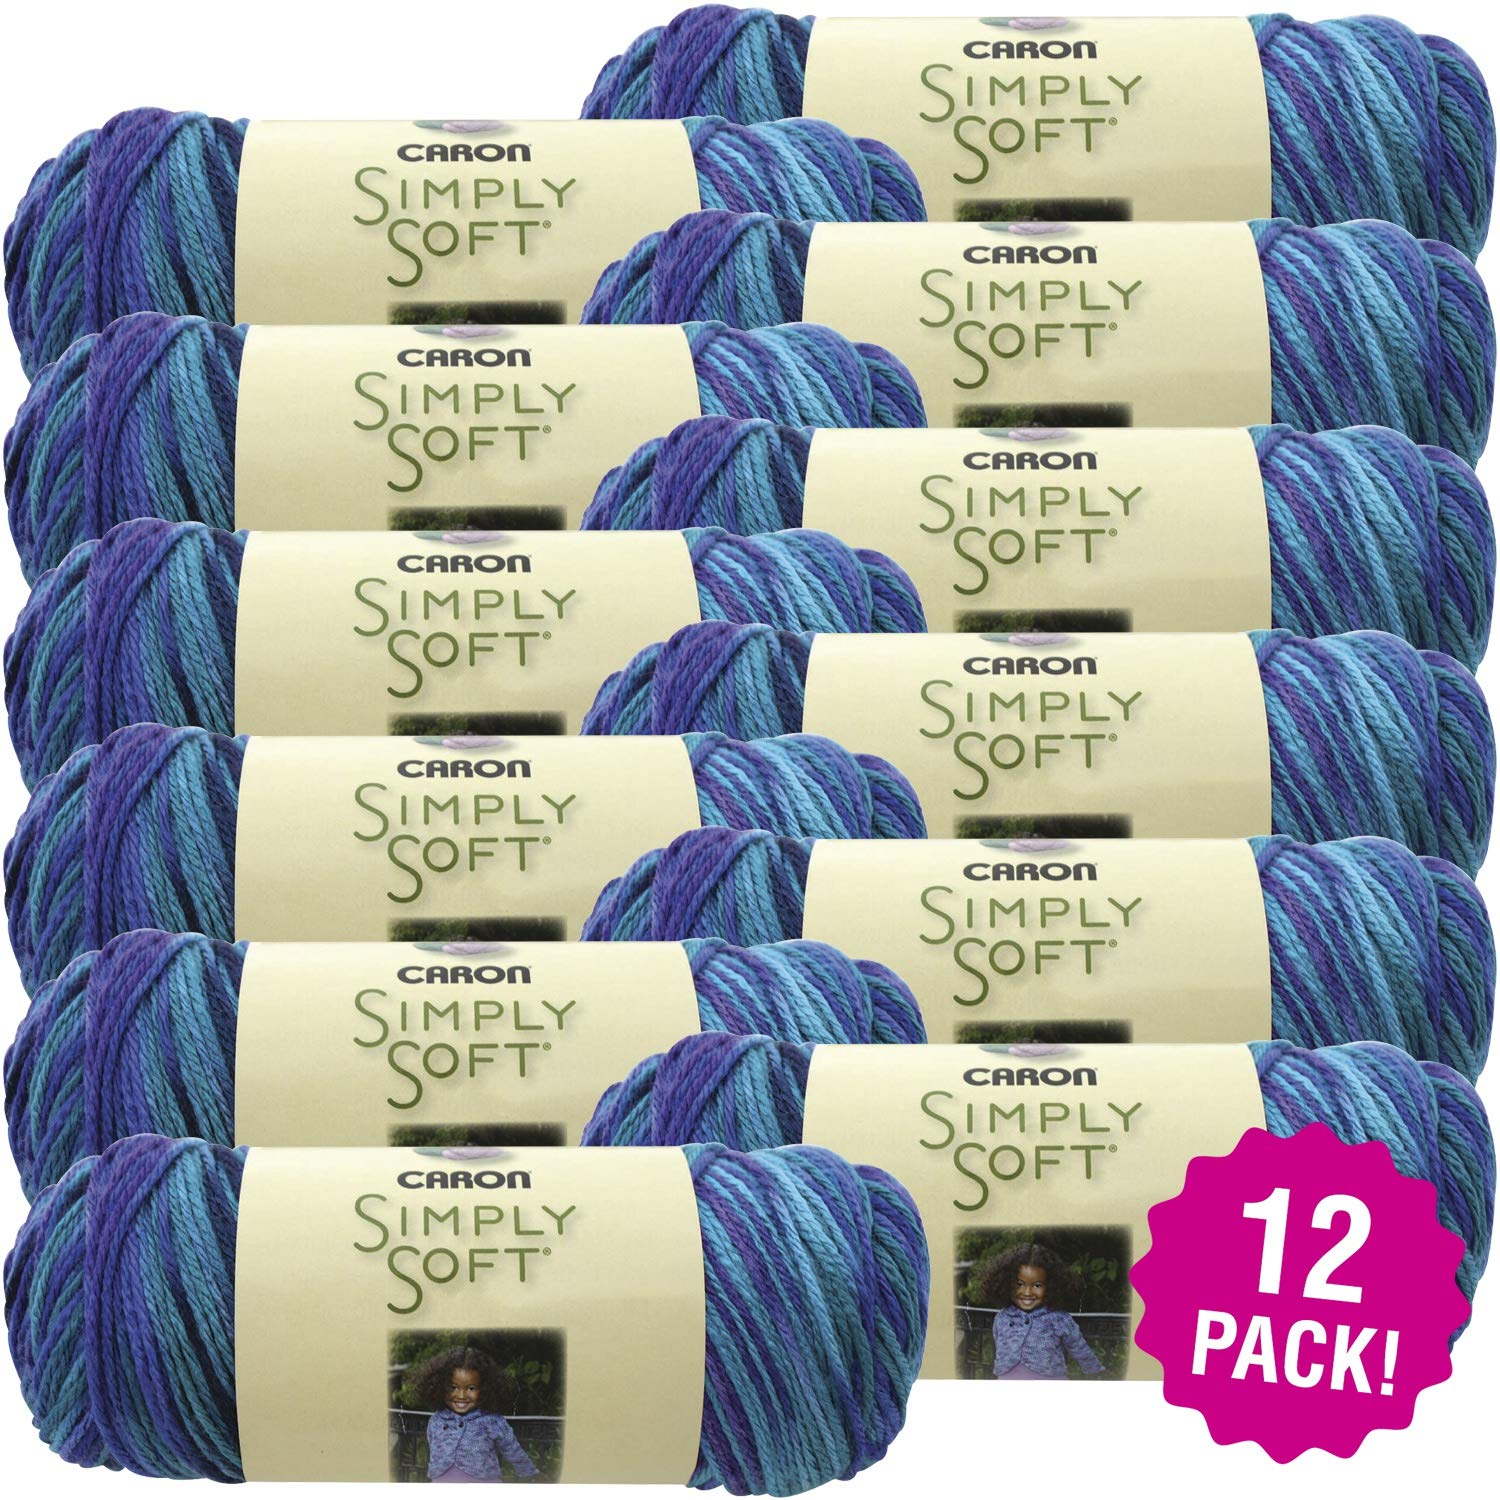 Caron 98064 Simply Soft Paints Yarn-Oceana, Multipack of 12, Pack